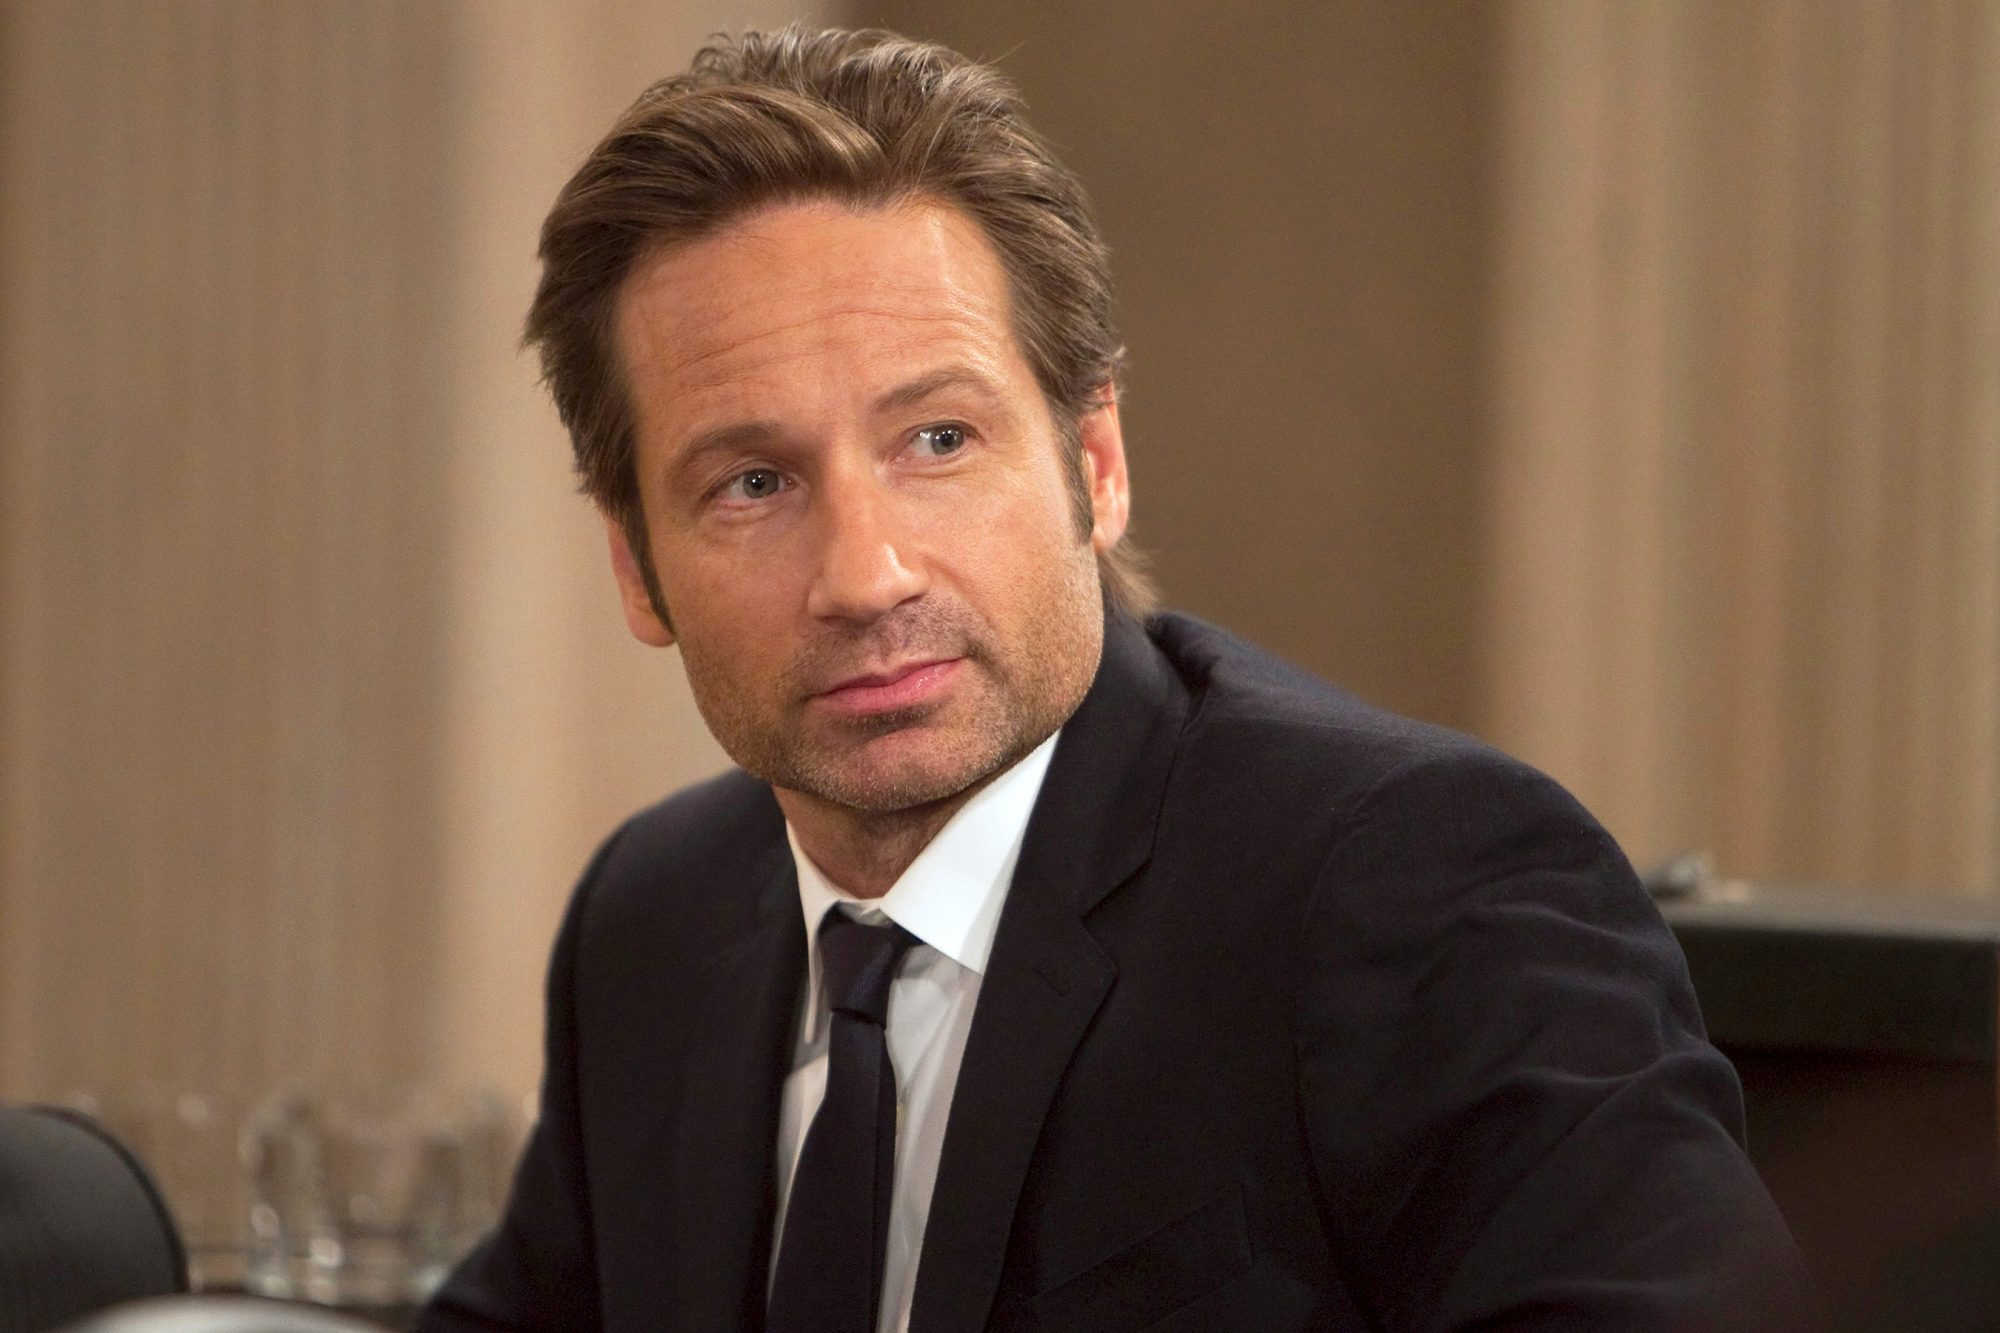 CALIFORNICATION, David Duchovny in 'The Trial' (Season 4, Episode 10, aired March 13, 2011). ph: